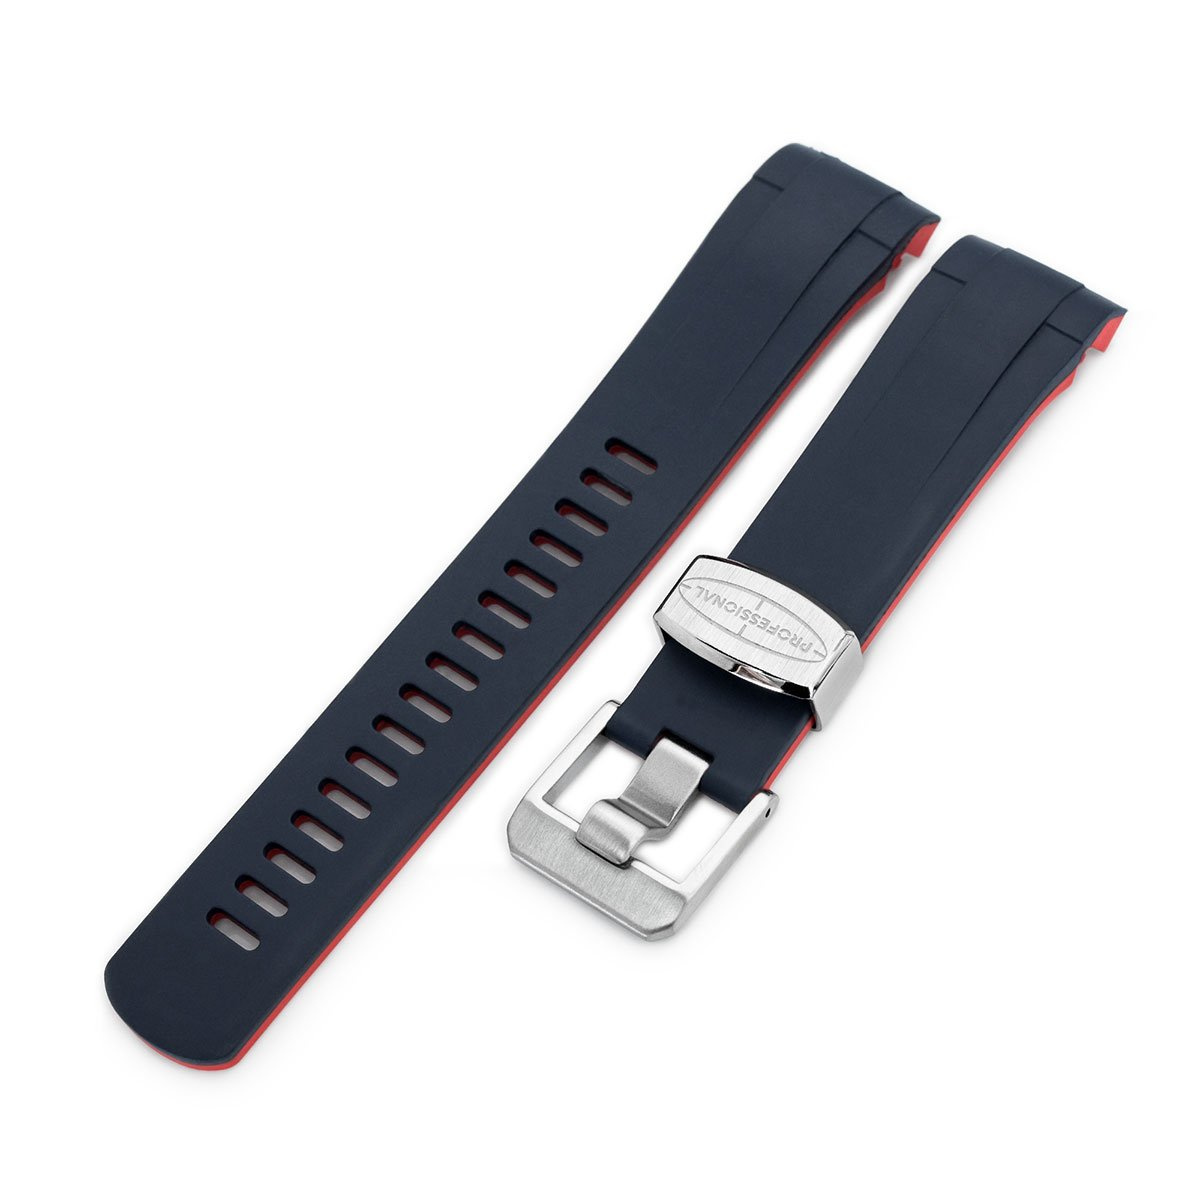 22mm Crafter Blue Dual Color Blue & Red Rubber Curved Lug Watch Strap for TUD BB M79230 Strapcode Watch Bands